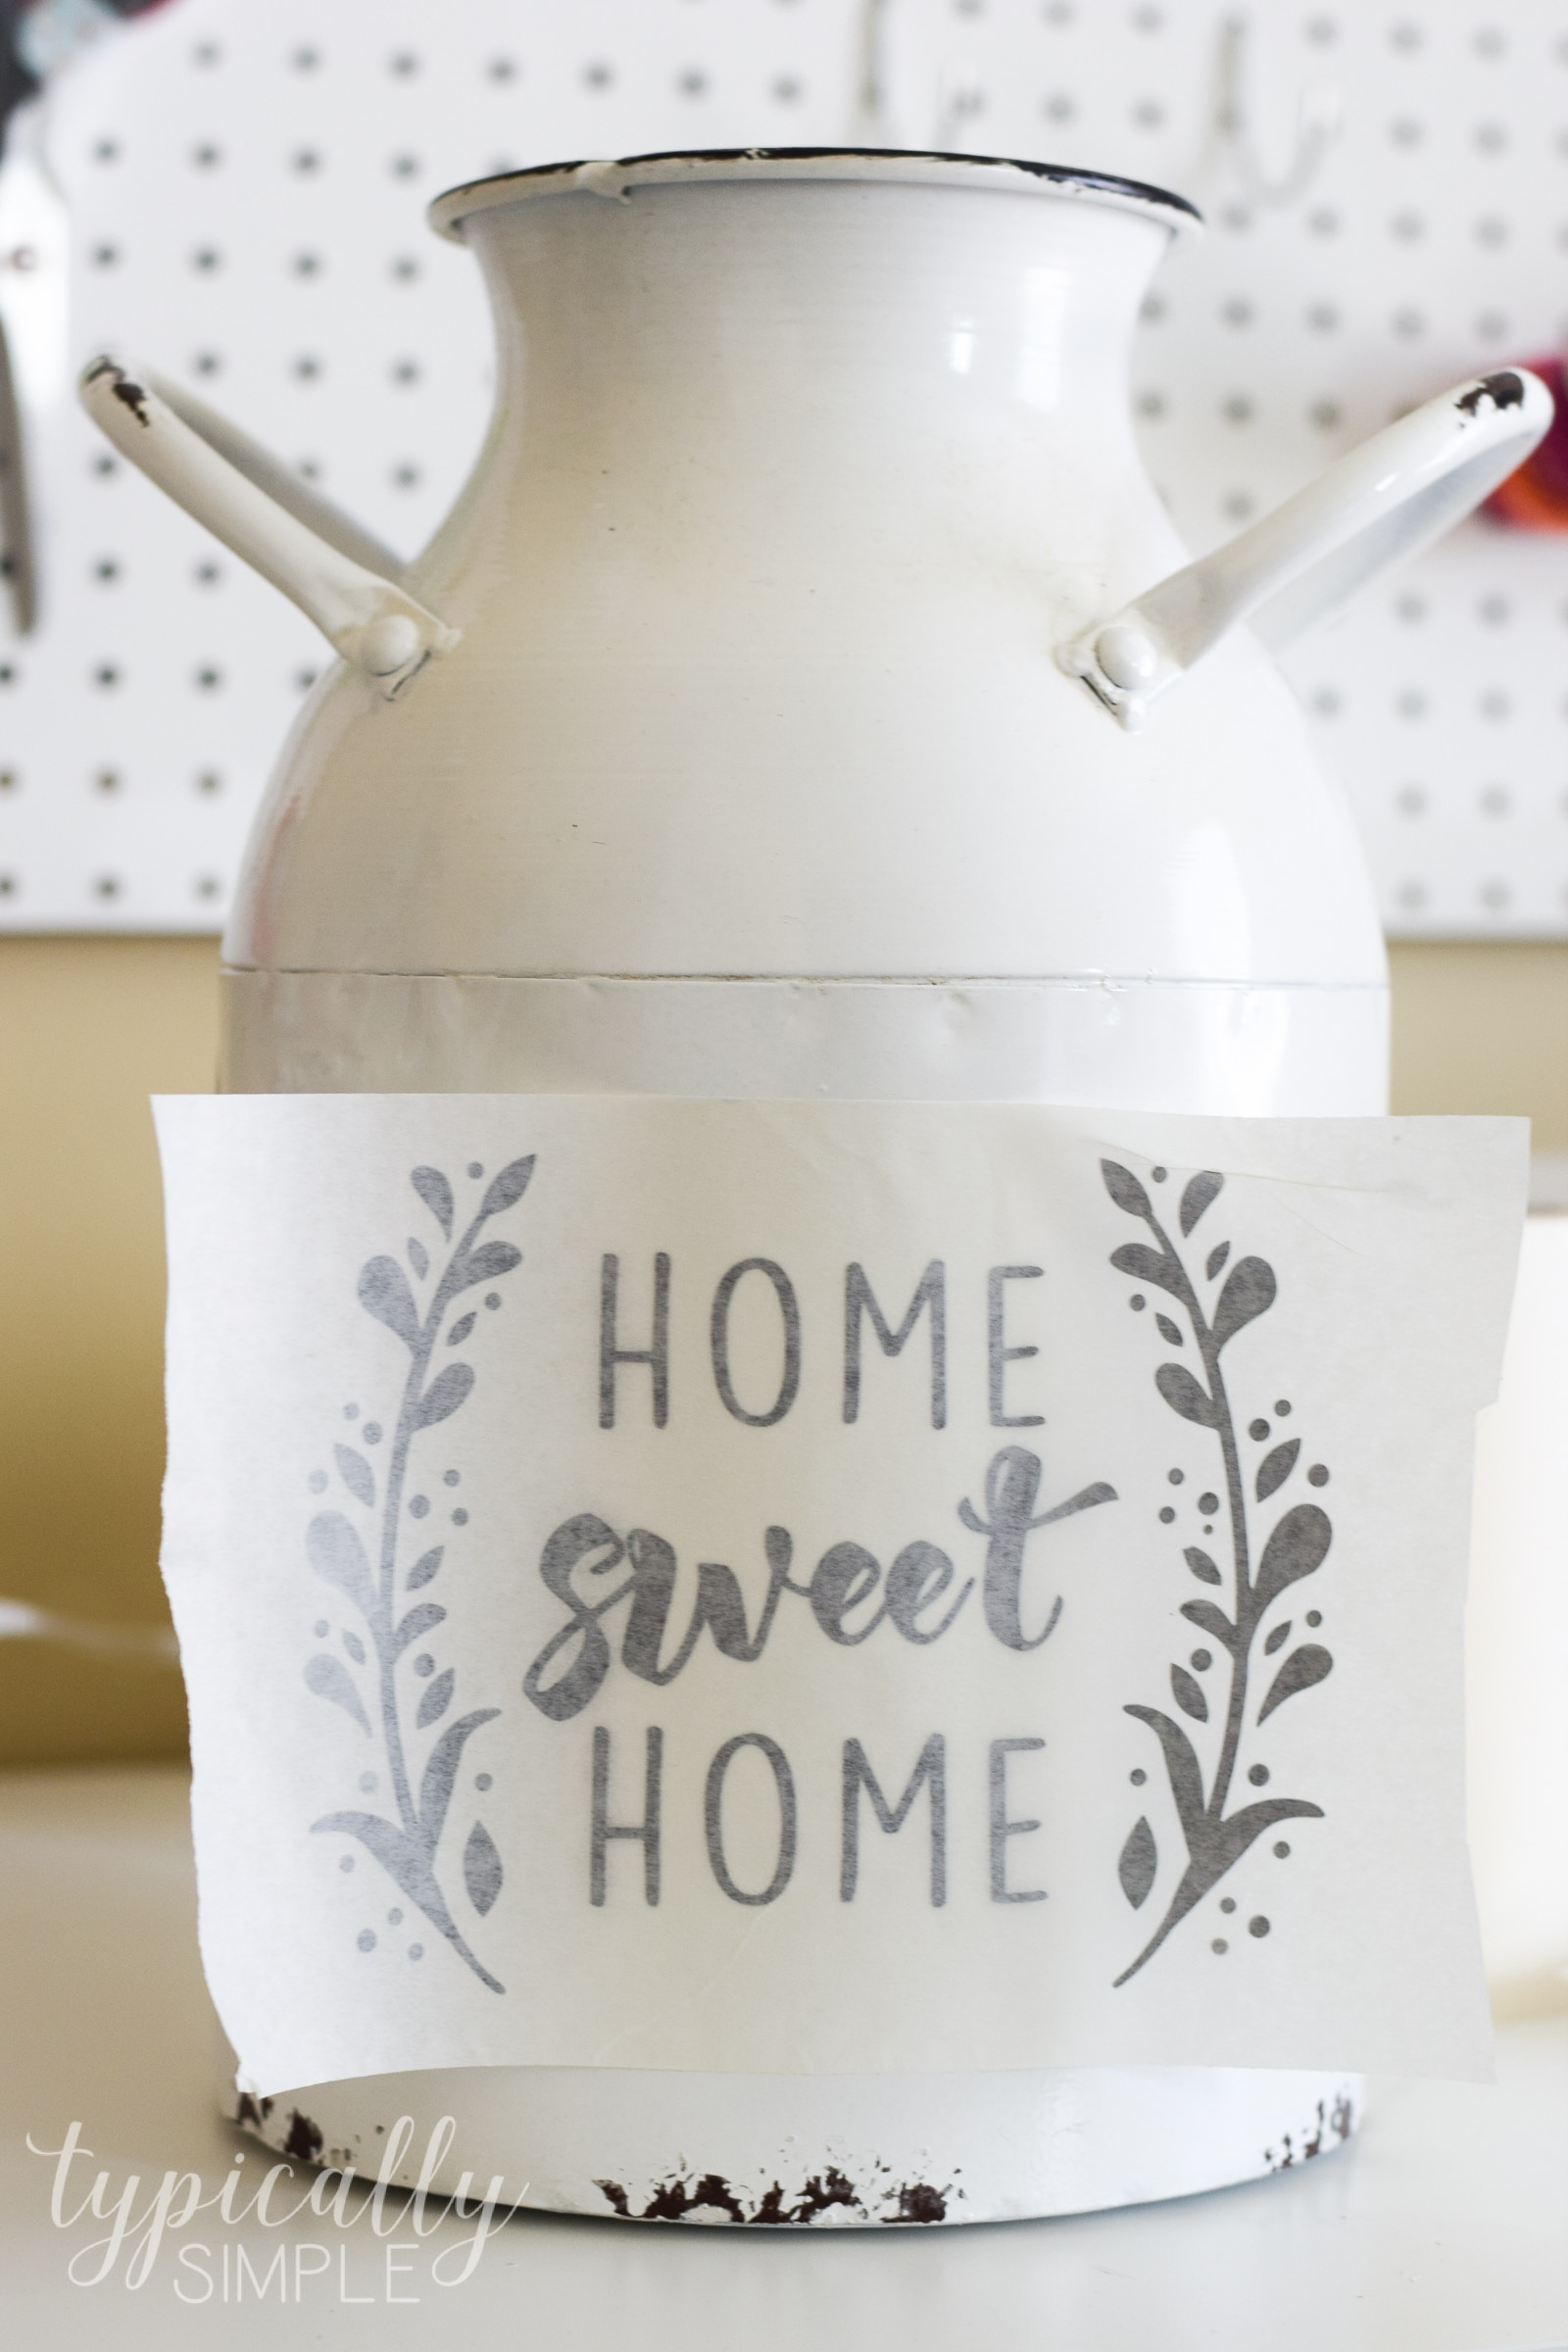 Cricut Project Inspiration: Using Vinyl - Typically Simple